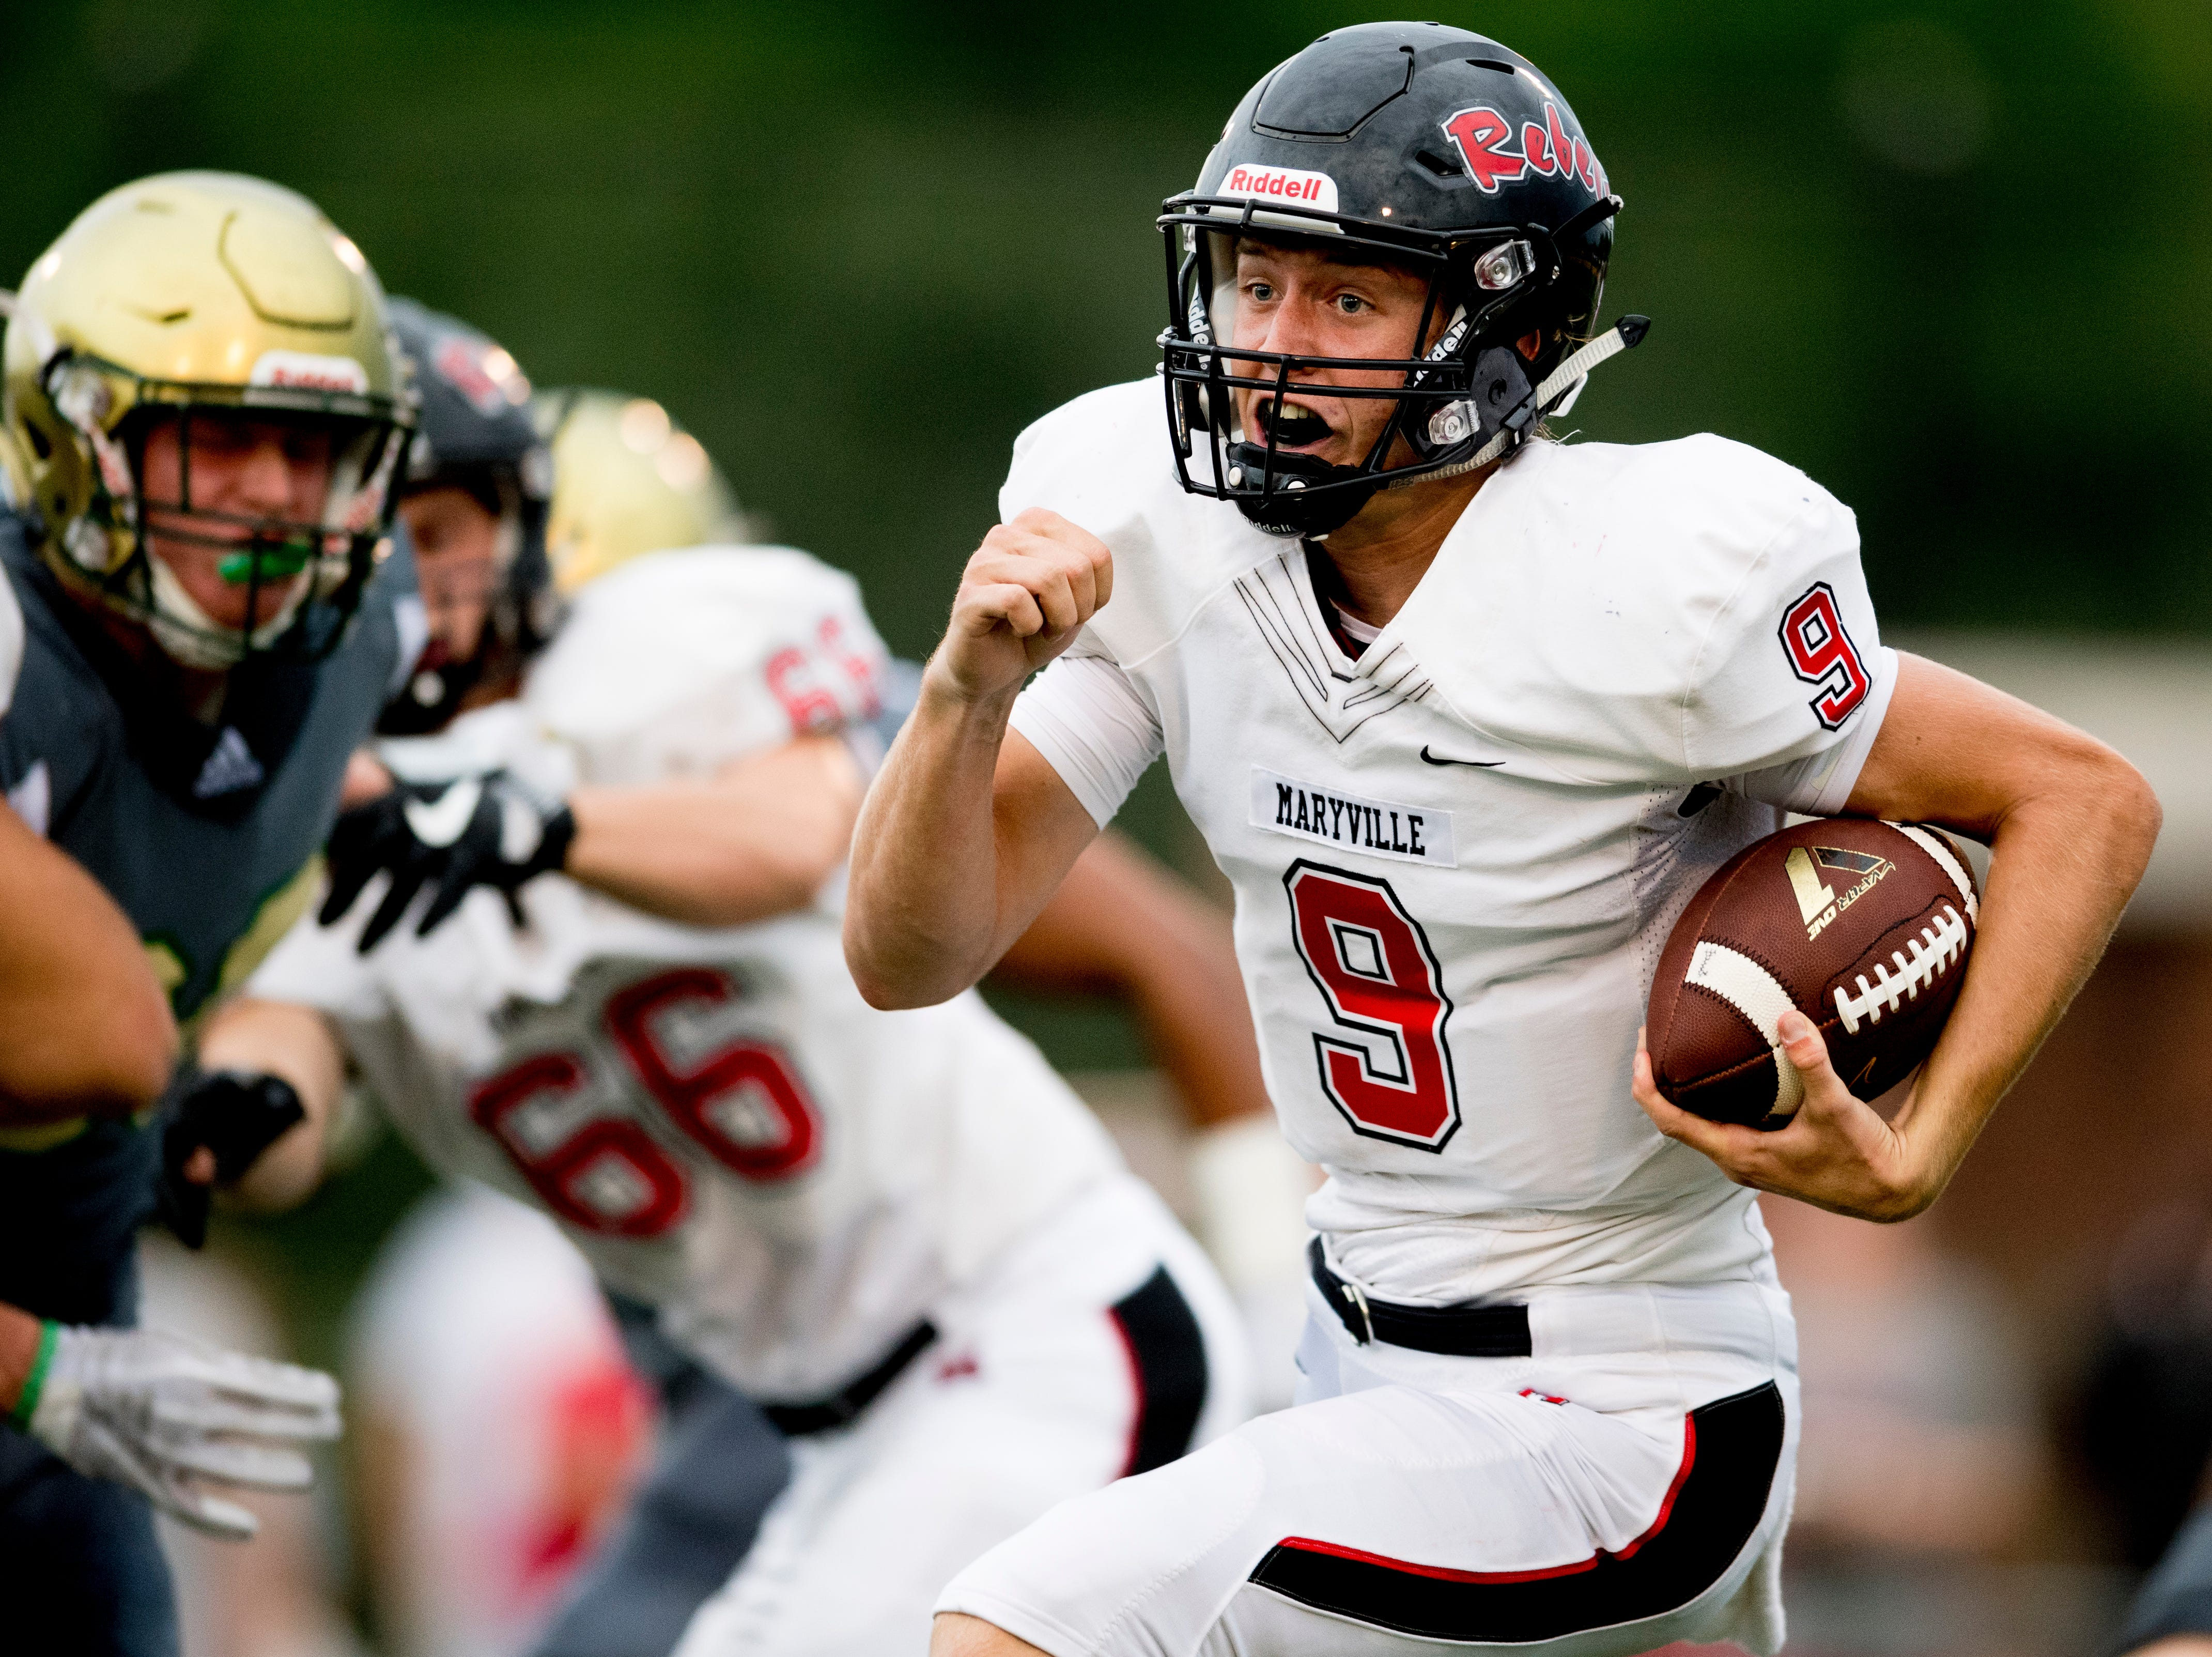 Maryville's Cade Chambers (9) runs down the field with the ball during a football game between Maryville and Catholic at Catholic High School in Knoxville, Tennessee on Friday, August 17, 2018.